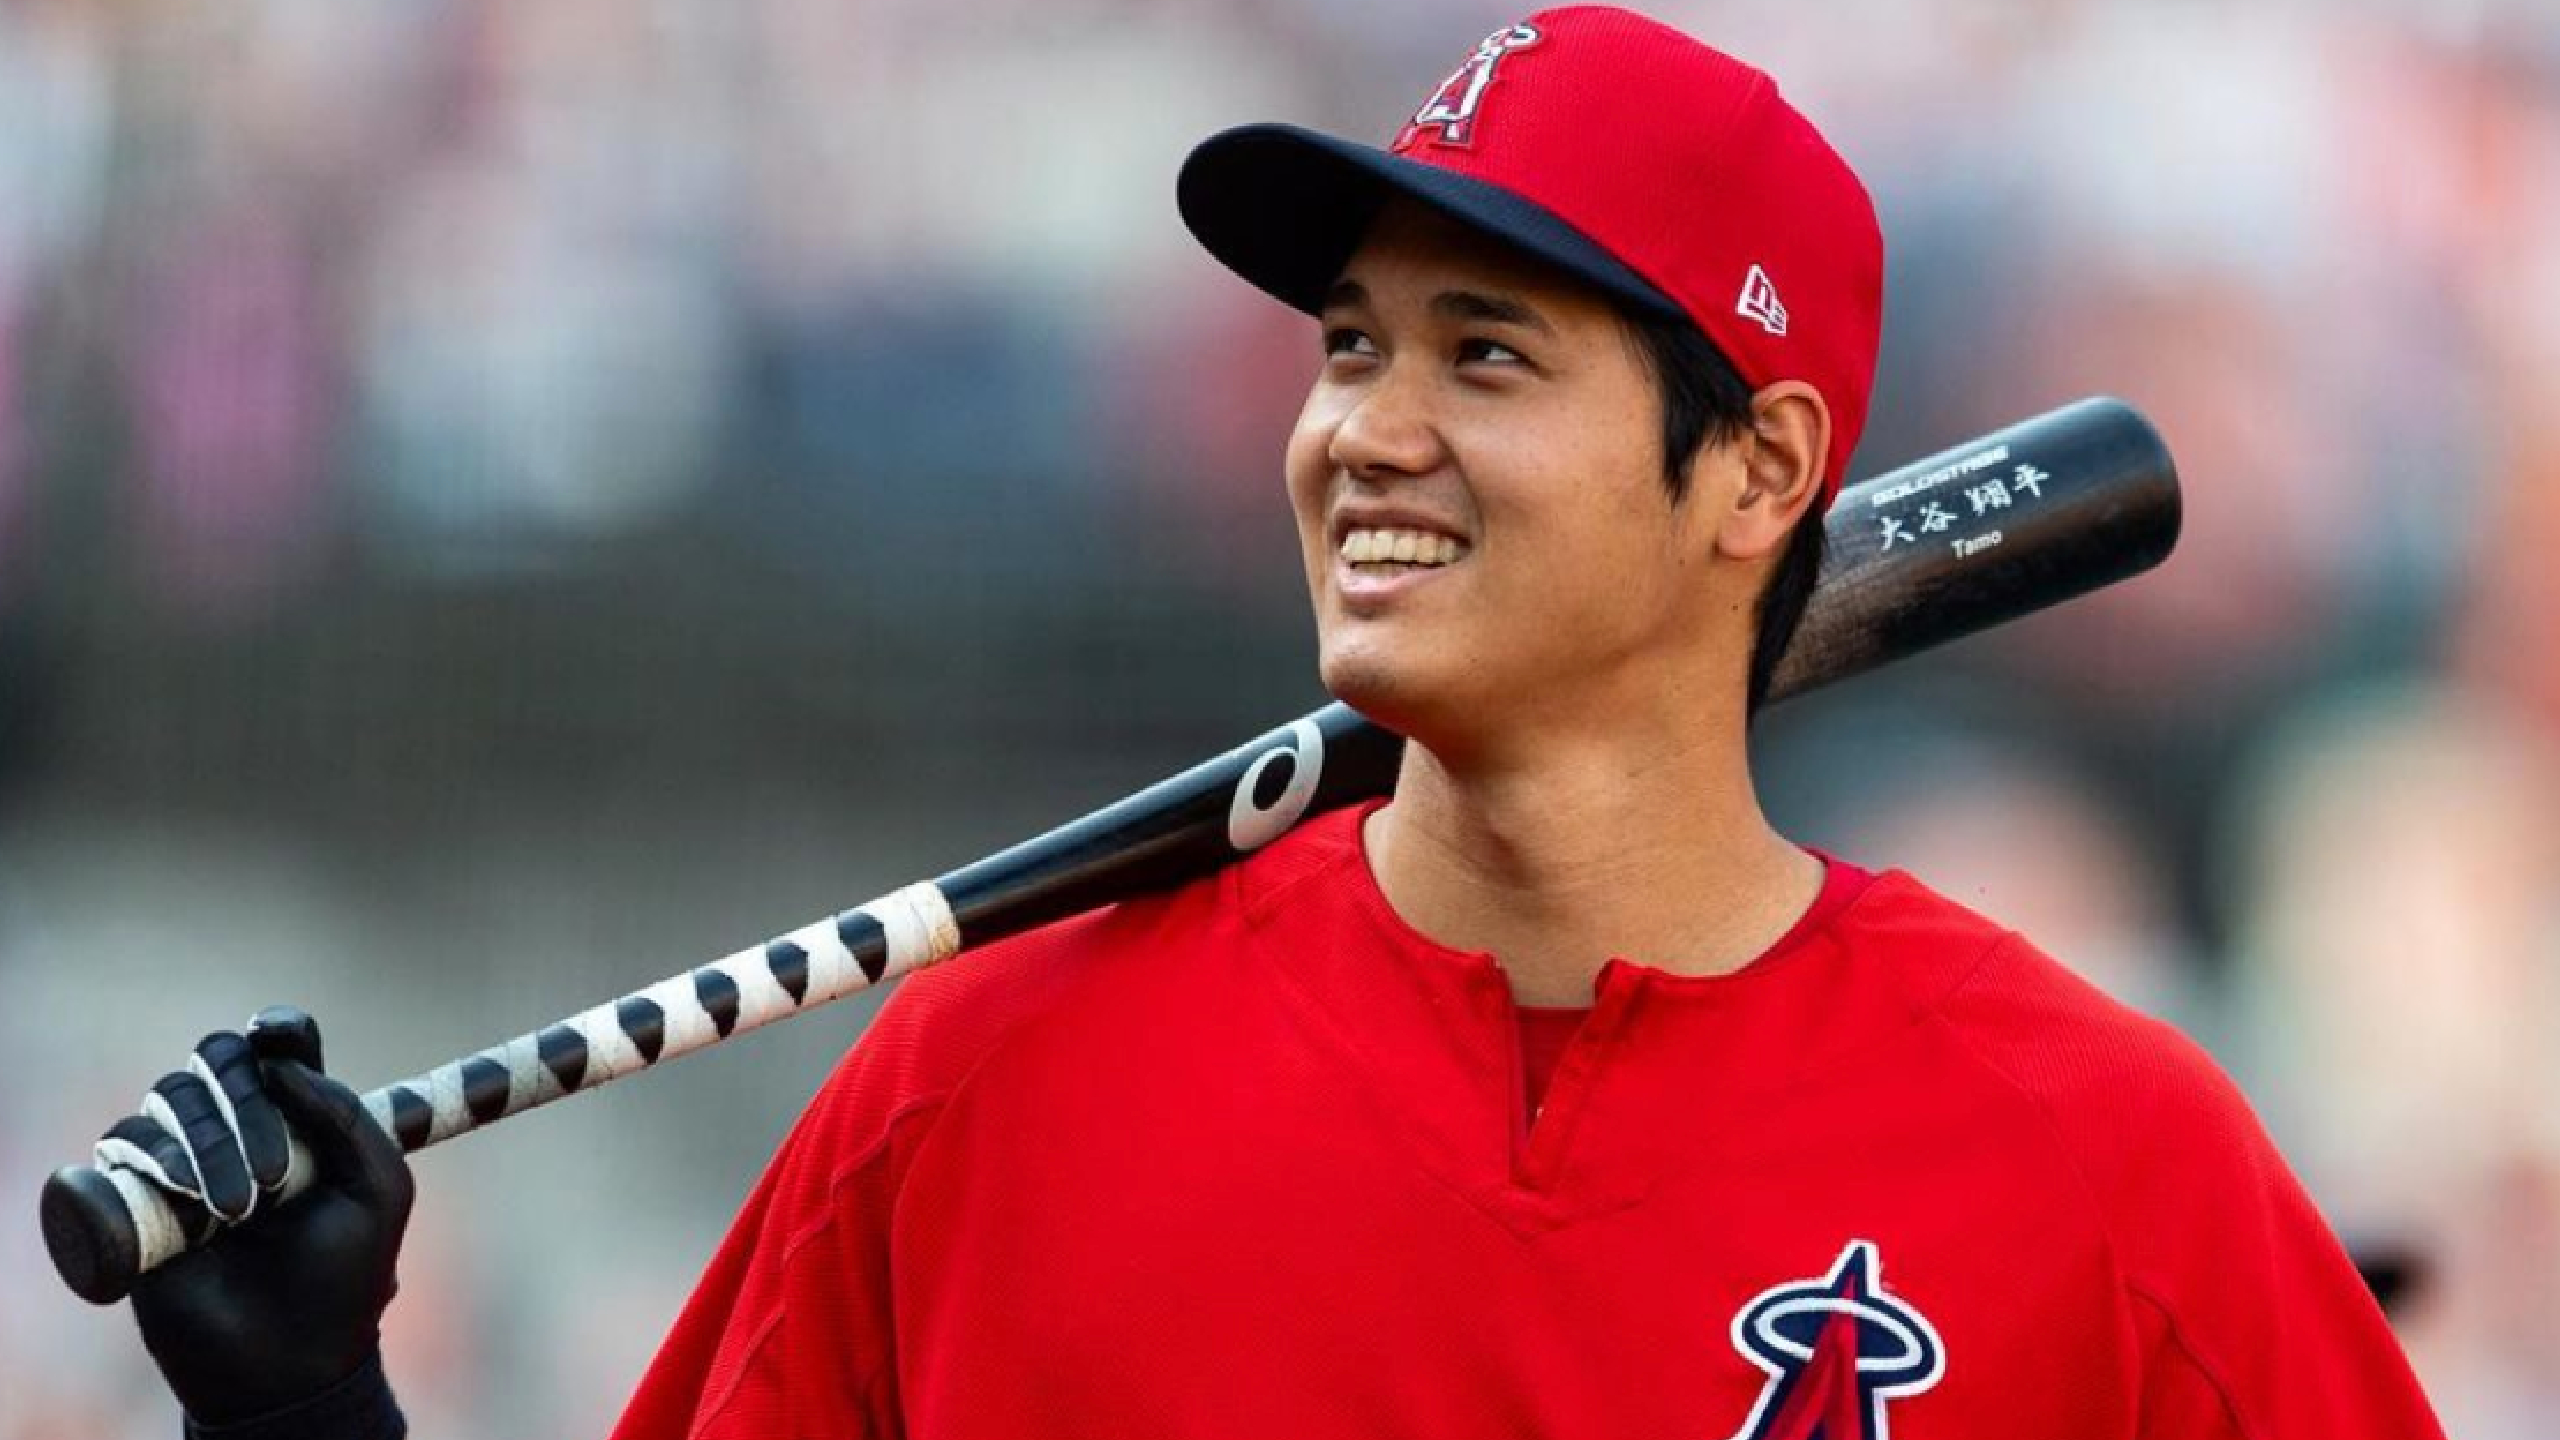 Ohtani All Star Game Dual